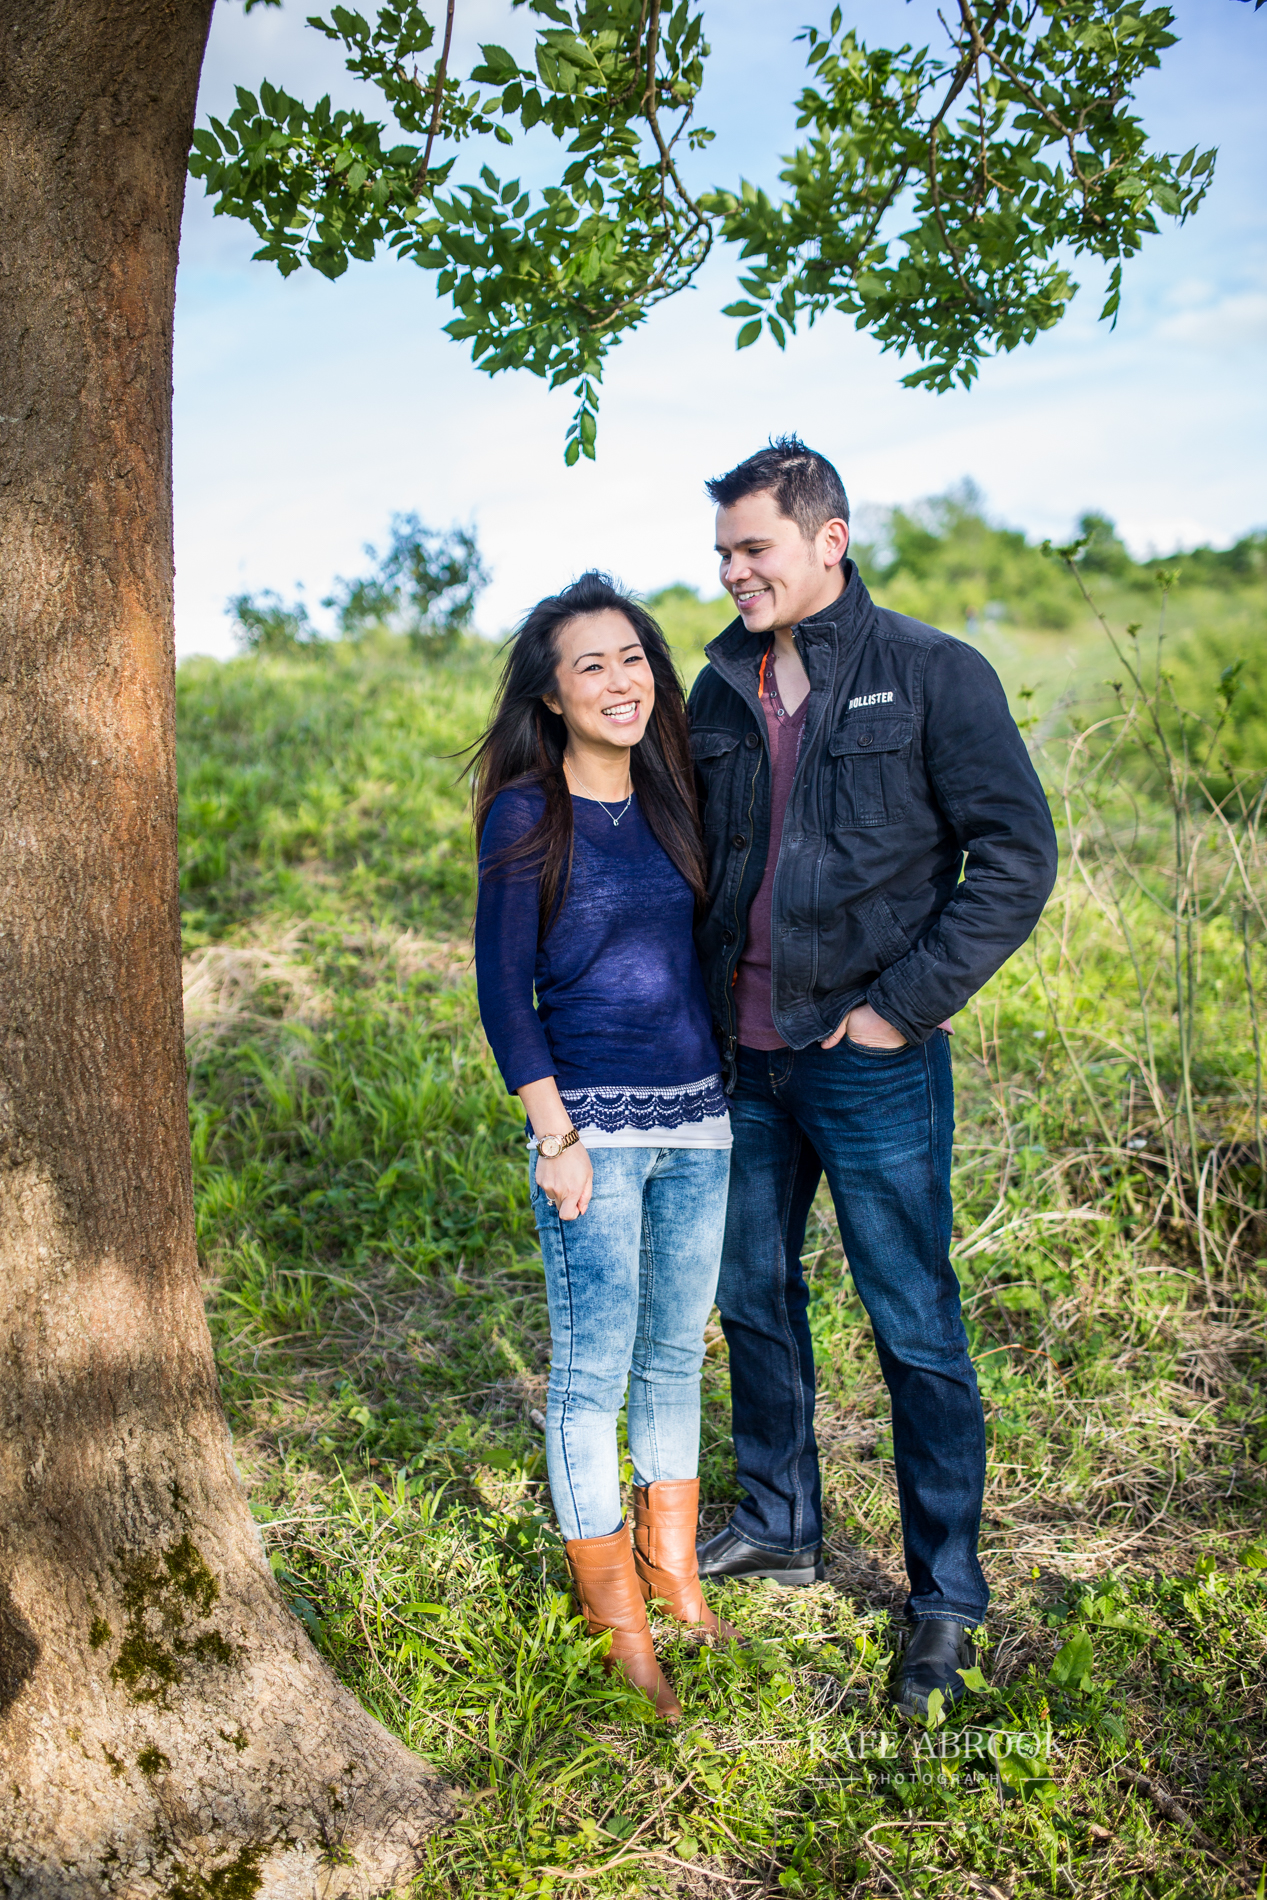 kerry & will engagement shoot totternhoe knolls dunstable bedfordshire-1001.jpg